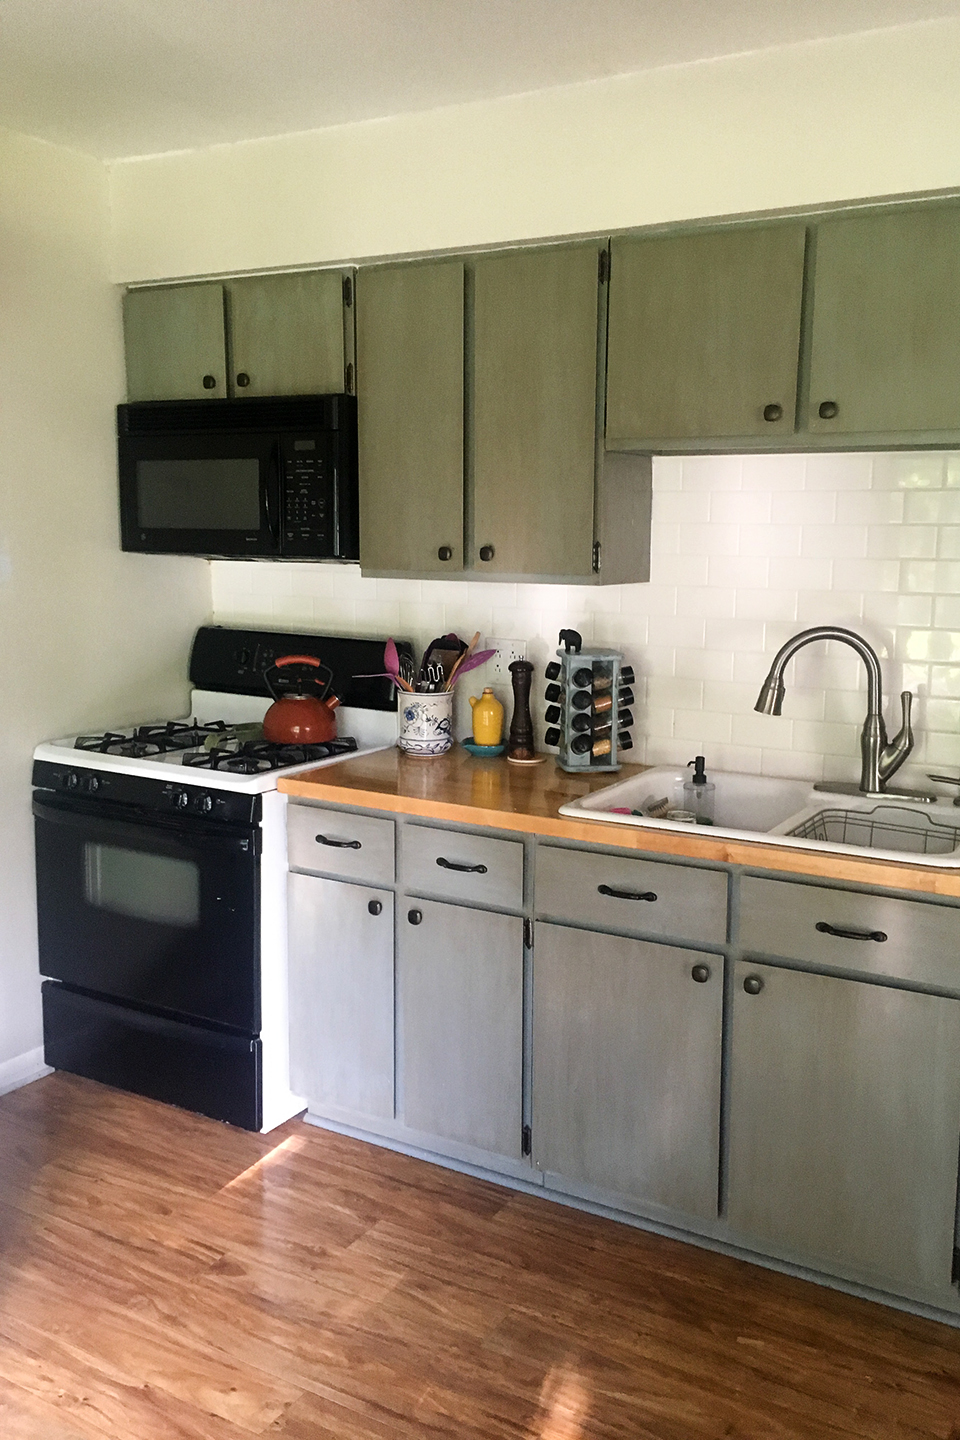 Olive and gray kitchen cabinets awaiting door replacement